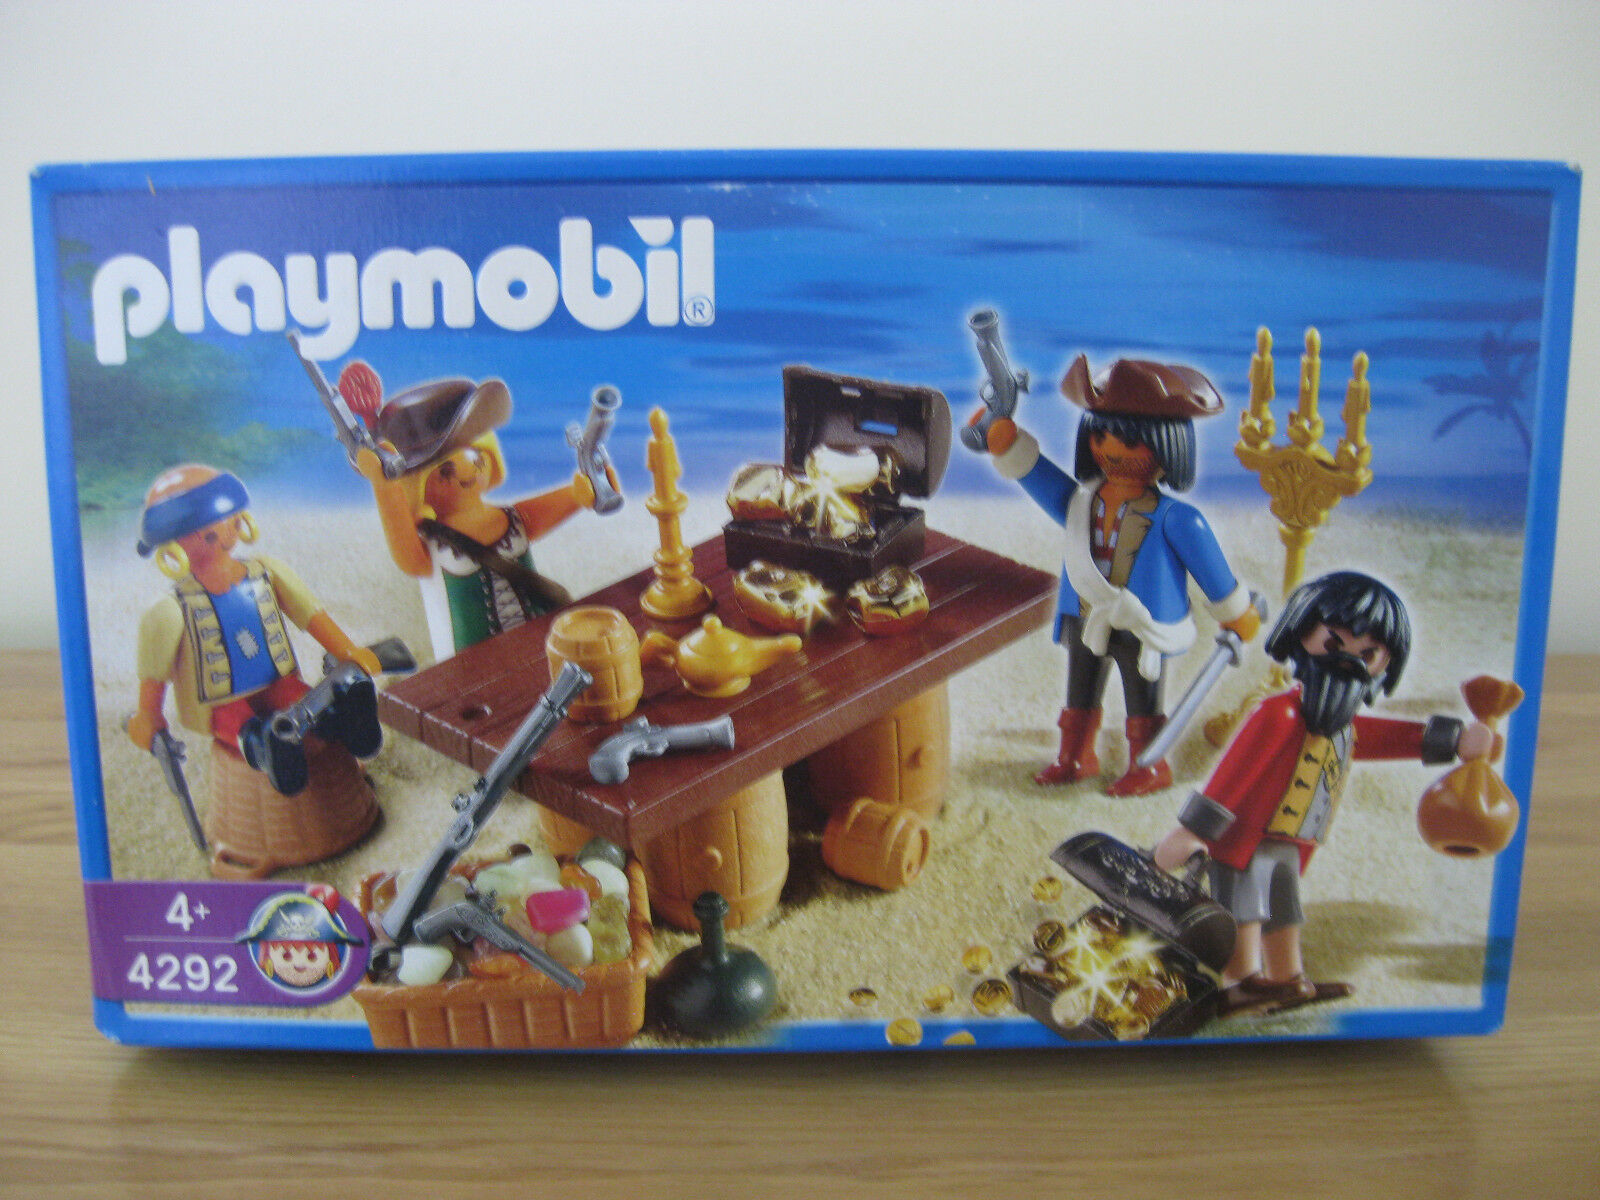 NEW PLAYMOBIL 4292 PIRATE CREW with Treasure 4 Figures 2006